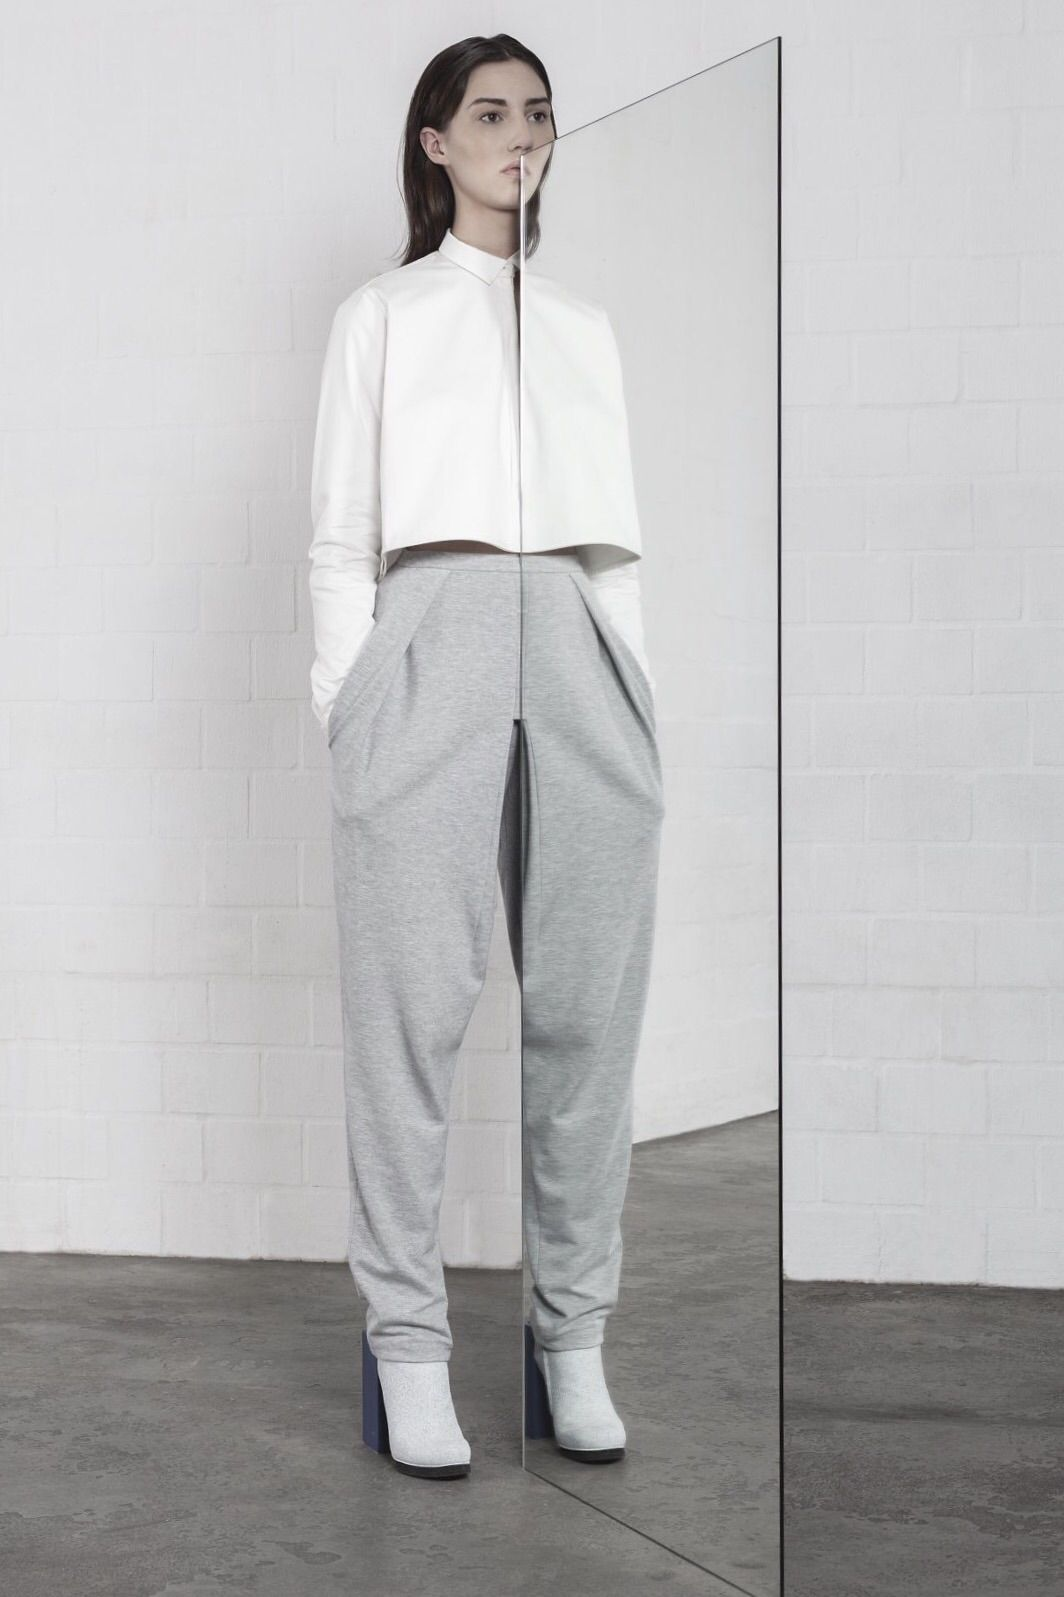 A mirror-inspired collection by Leonie Barth titled I is Another — no-nonsense avant-garde fashion.  Full article & more images on Minimalissimo.  #minimalism #fashion #design #mirror